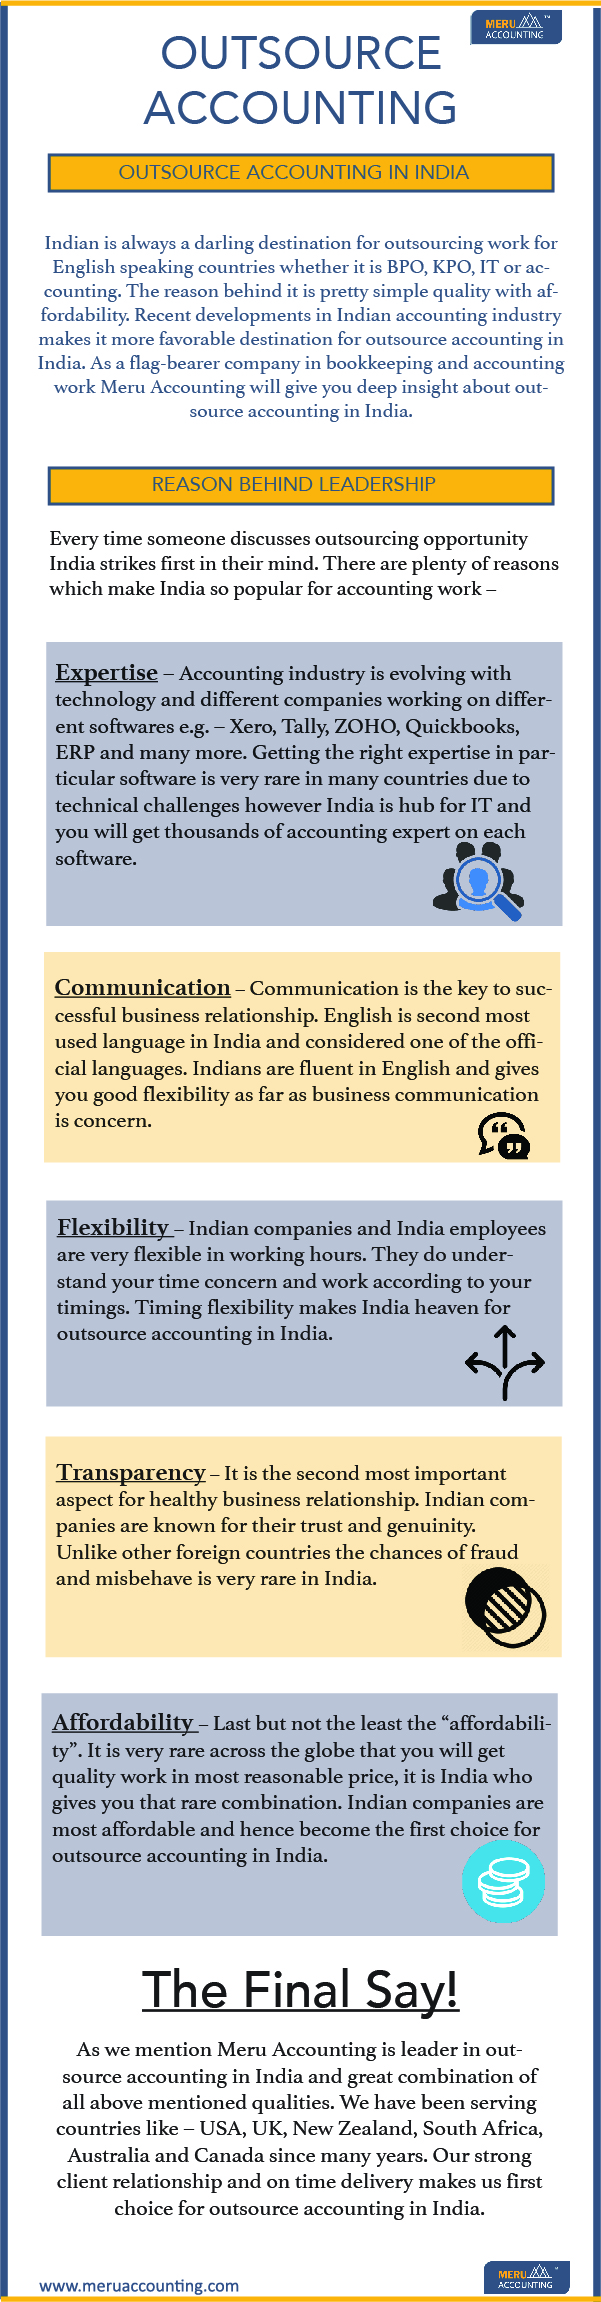 Outsource Accounting in India